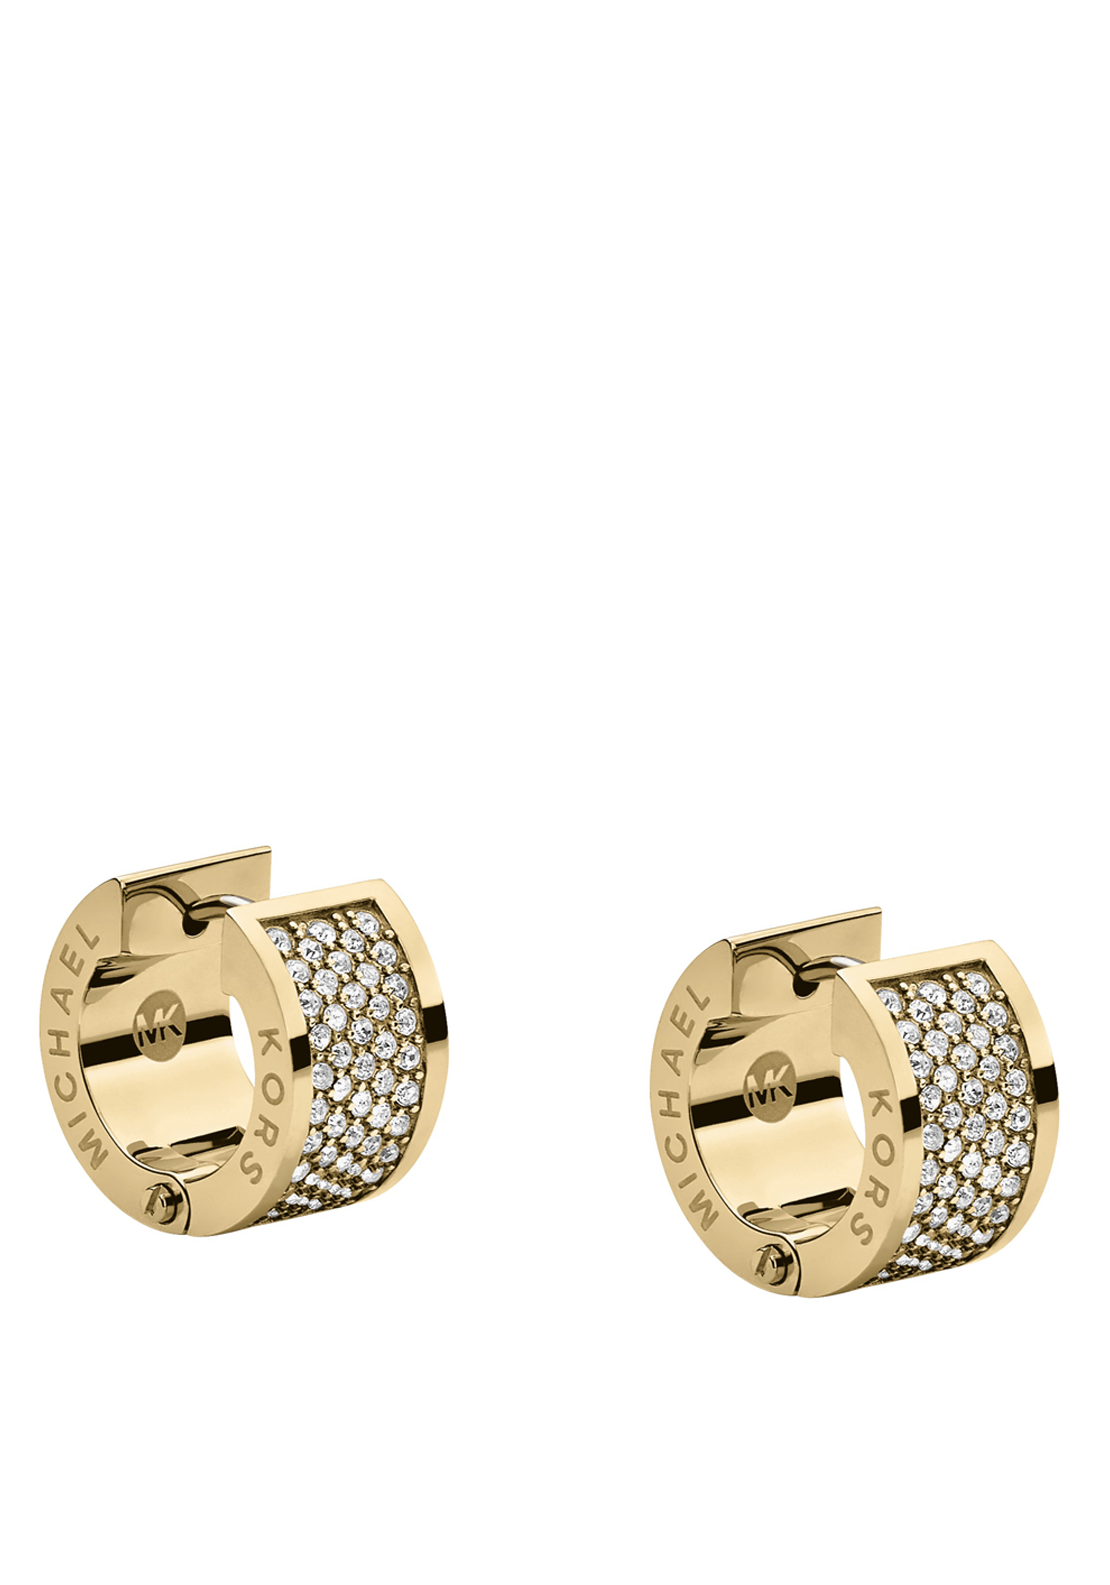 Michael Kors Womens Pave Stone Huggie Earrings, Gold